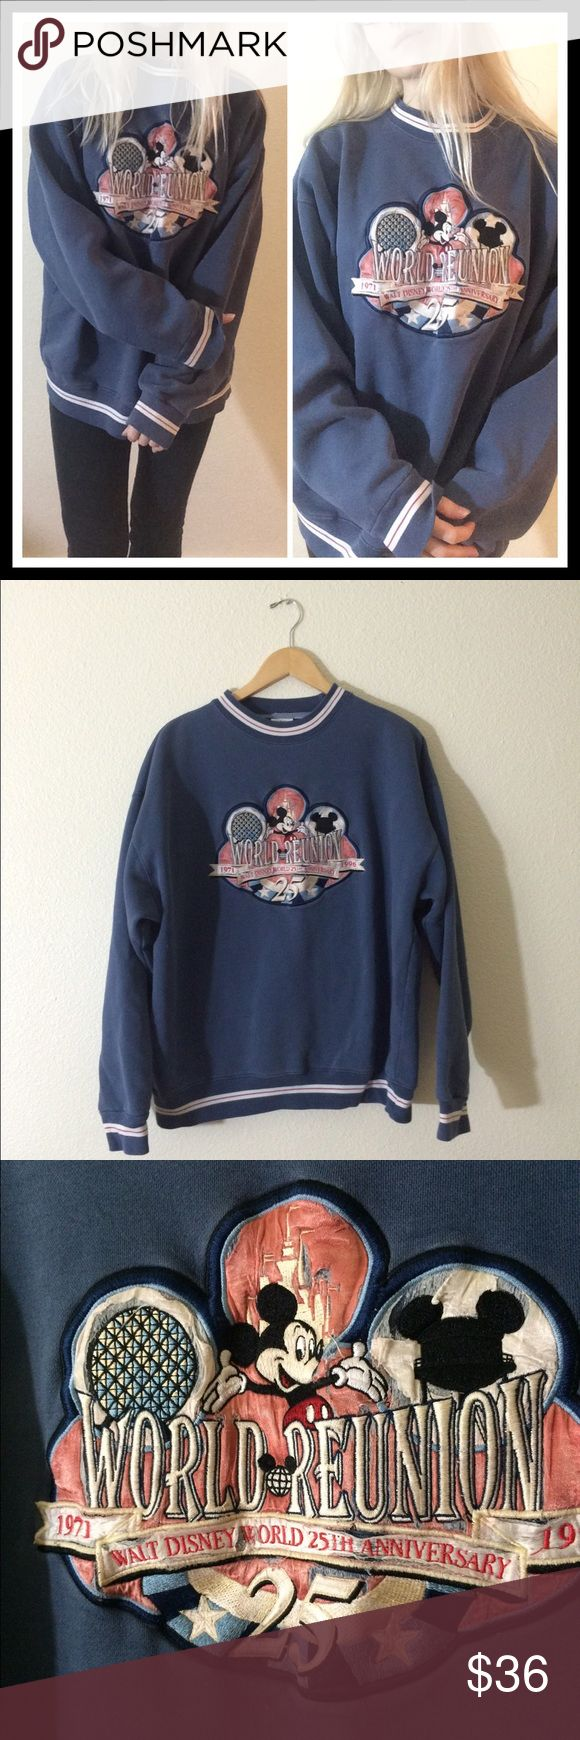 """🌟90's VTG Disneyland 25th Anniversary Pullover🌟 +Measurements+  Bust- 50""""  Length- 27"""" +Details+  Model is 5' 5"""" and is a size XS- No tagged size (please refer to measurements)- high quaintly thick fabric- embroidered print on front (distressed due to age)- blue/grey in color ✨NOT UNIF✨🐰NO TRADES🐰 #90s #grunge #idleskin #distressed #vintage #graphic #disney #mickey #mouse #cartoon #oversized #crewneck UNIF Tops Sweatshirts & Hoodies"""